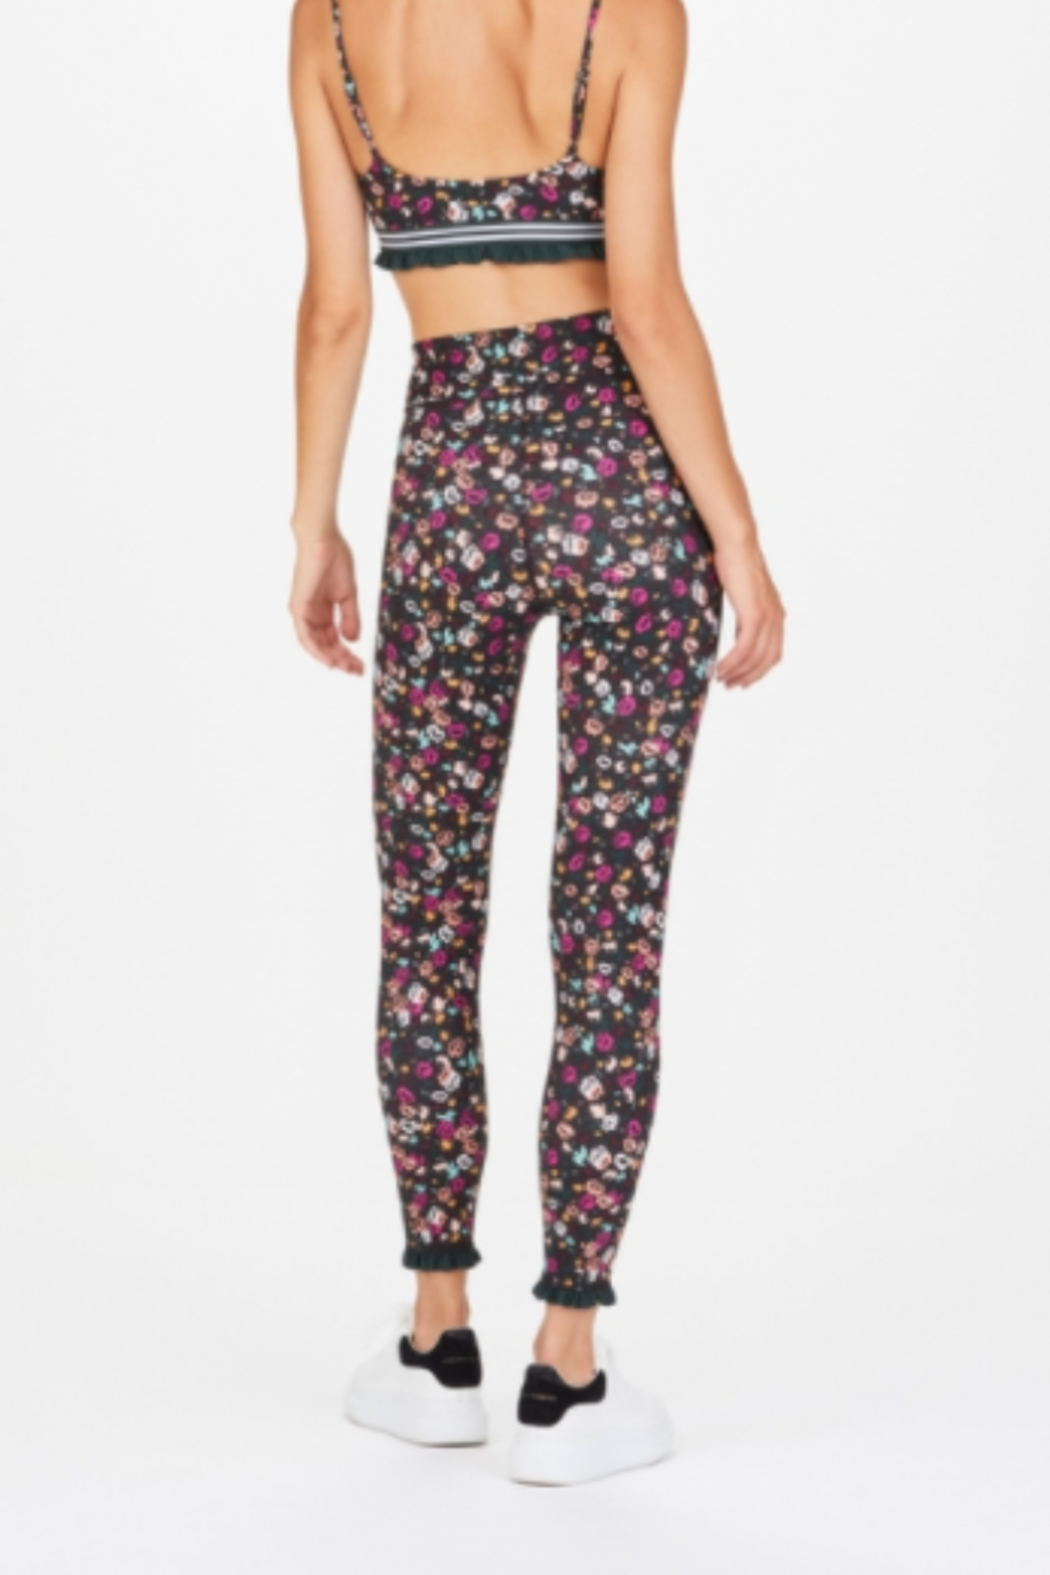 Upside Floral Active Legging with mini ruffle edge - Side Cropped Image